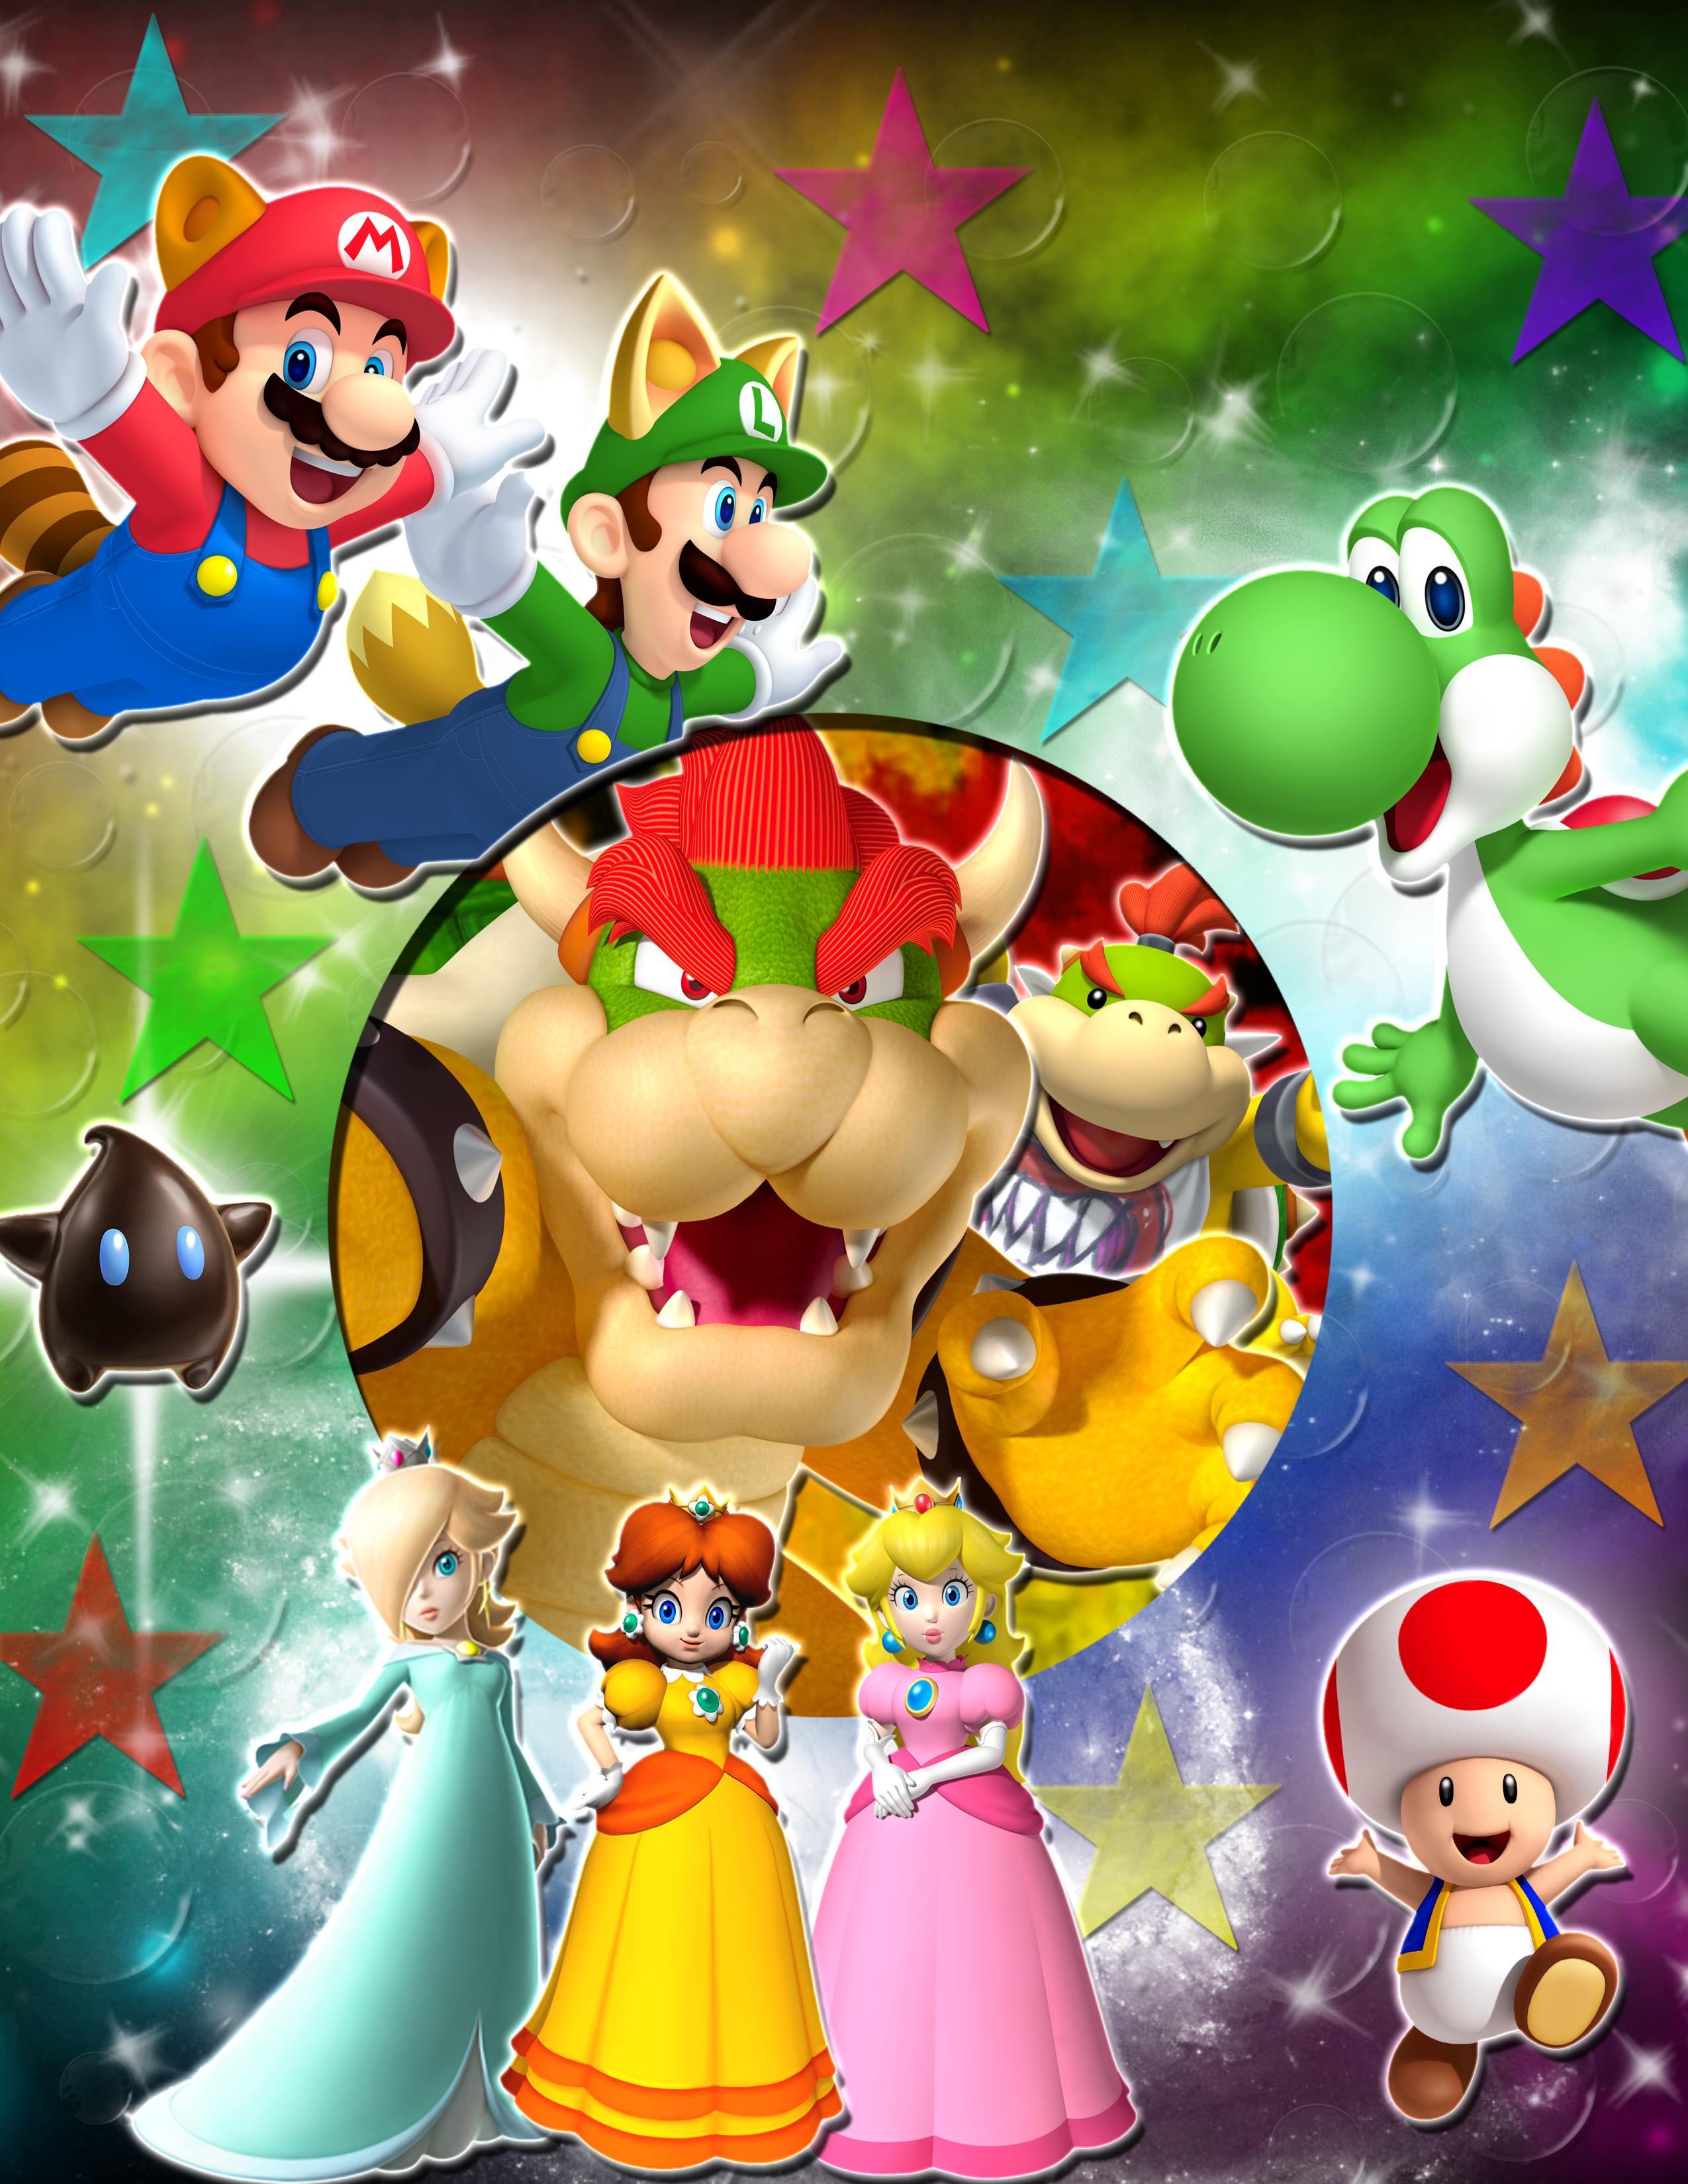 A Huge Mario Characters Background by YoshiLuigi45 on